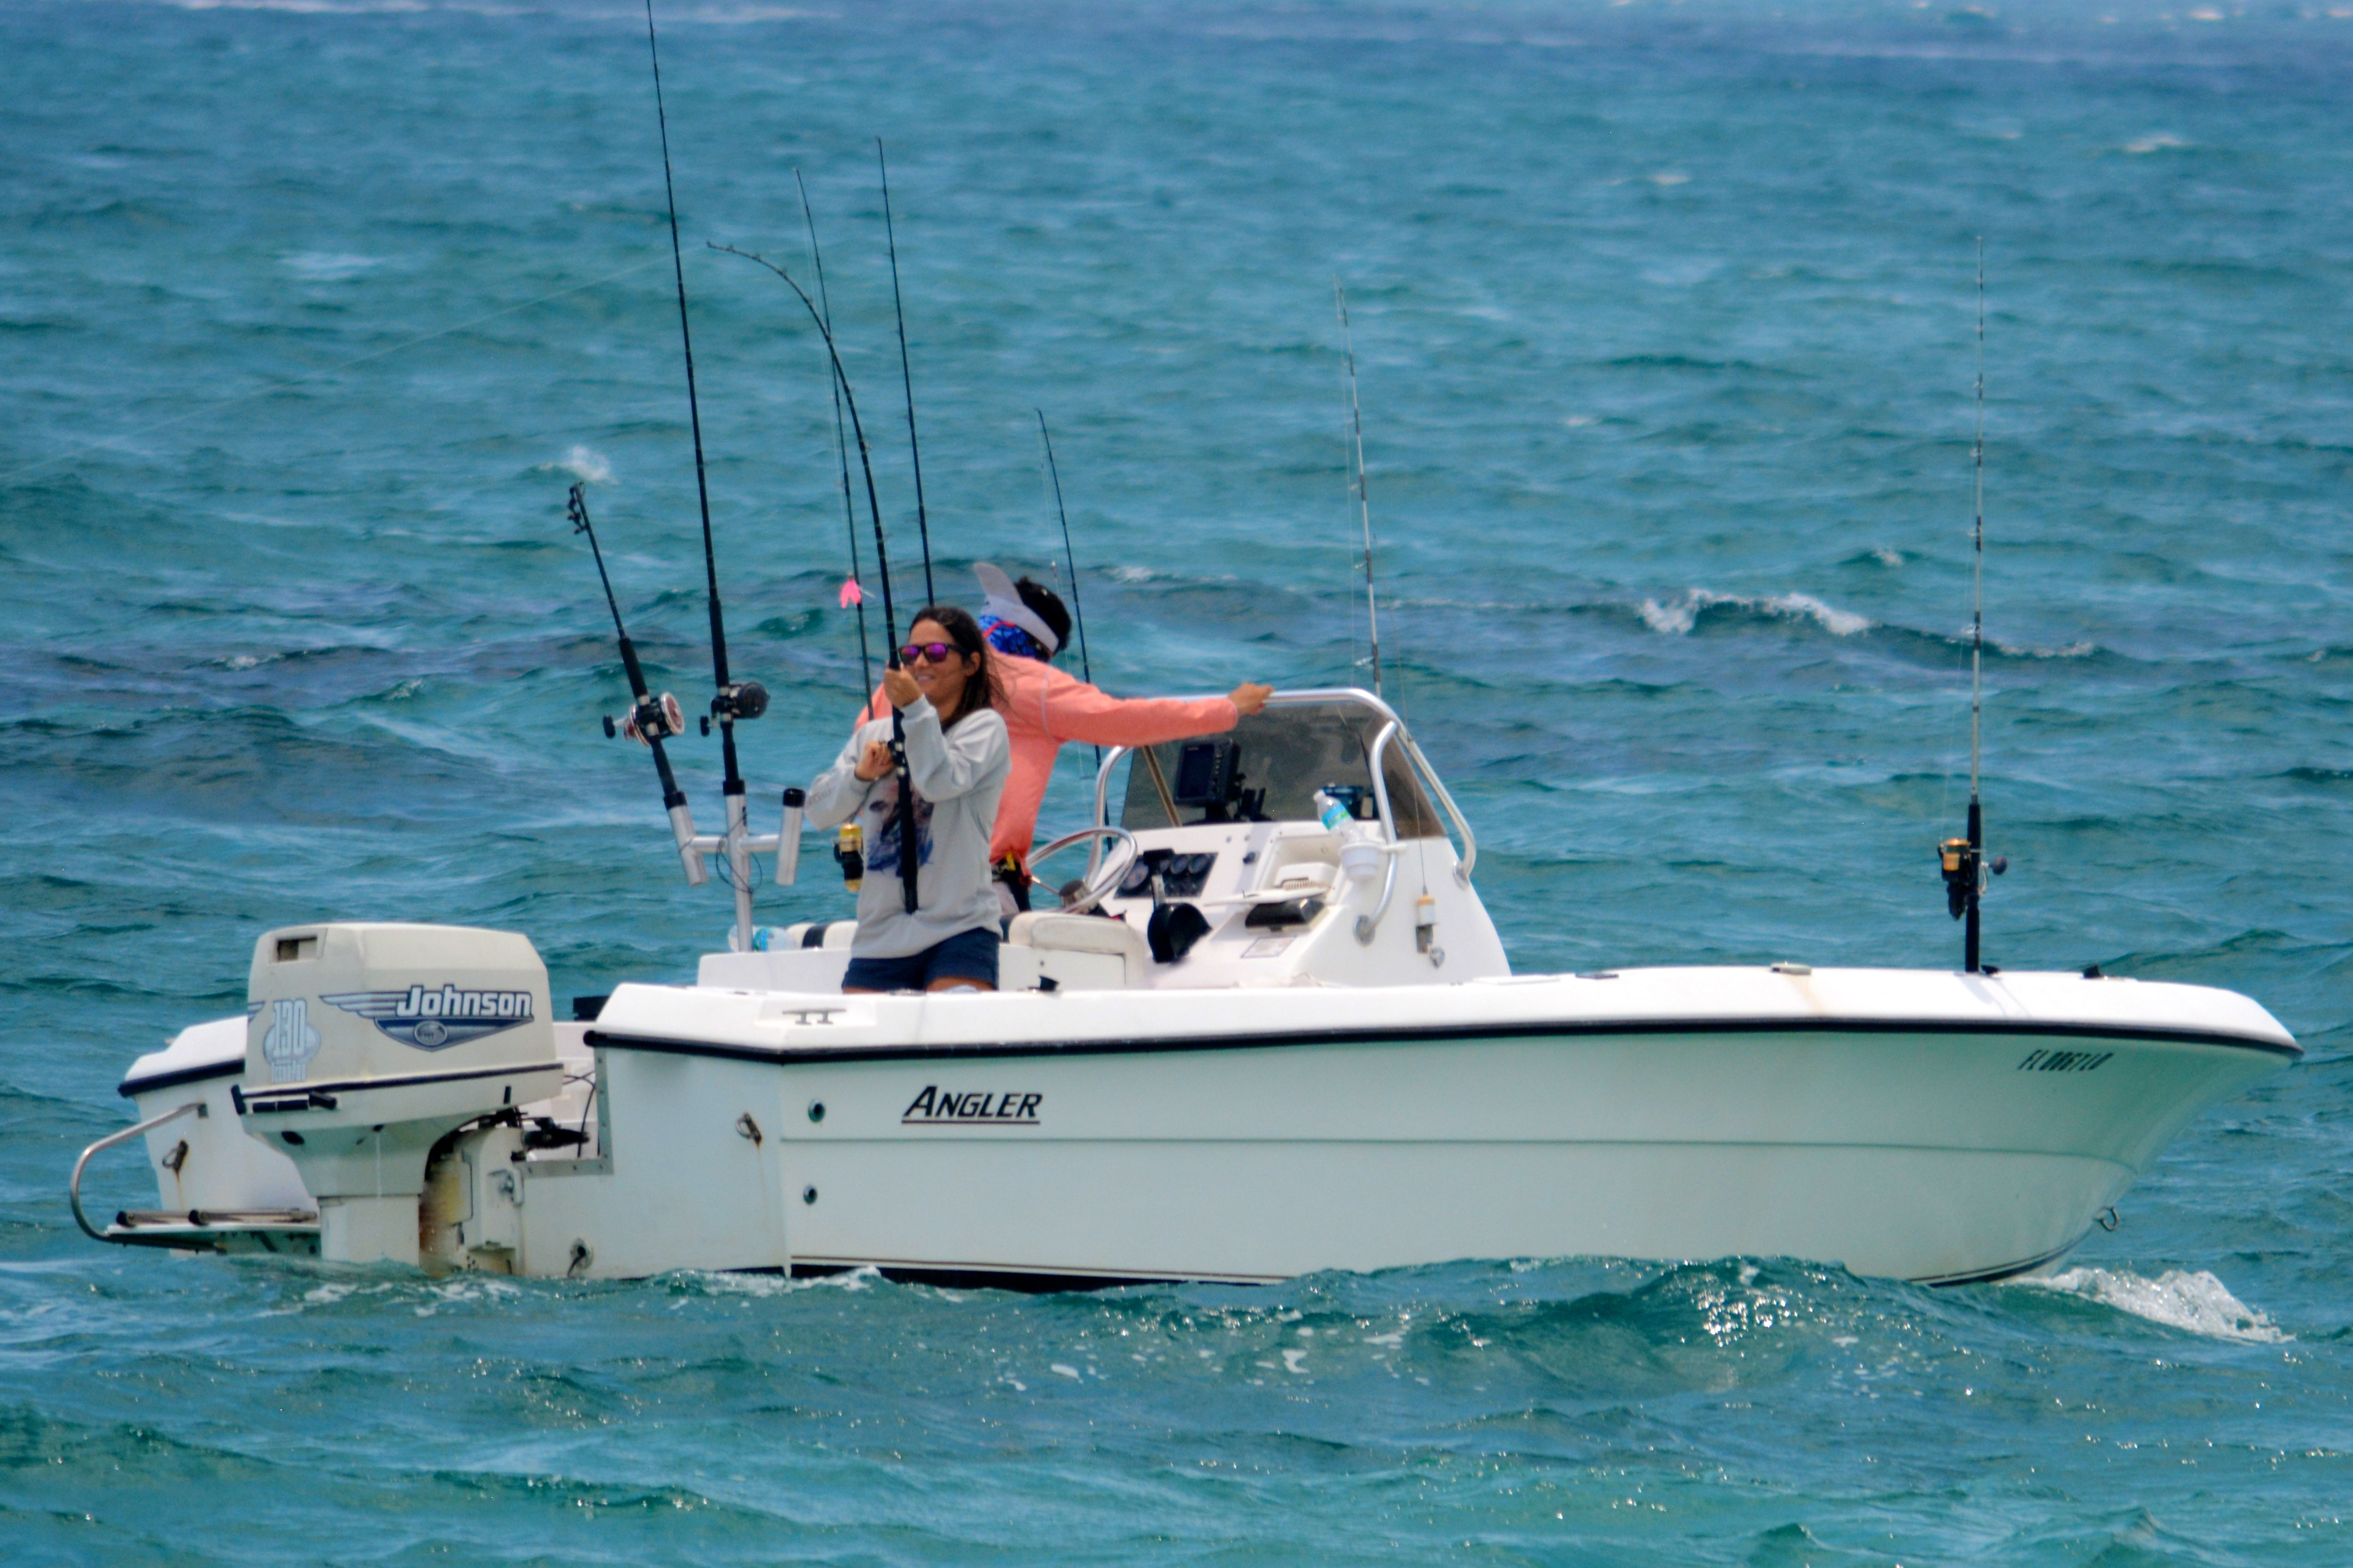 20 angler center console with 140hp suzuki four stroke for Delray beach fishing charters